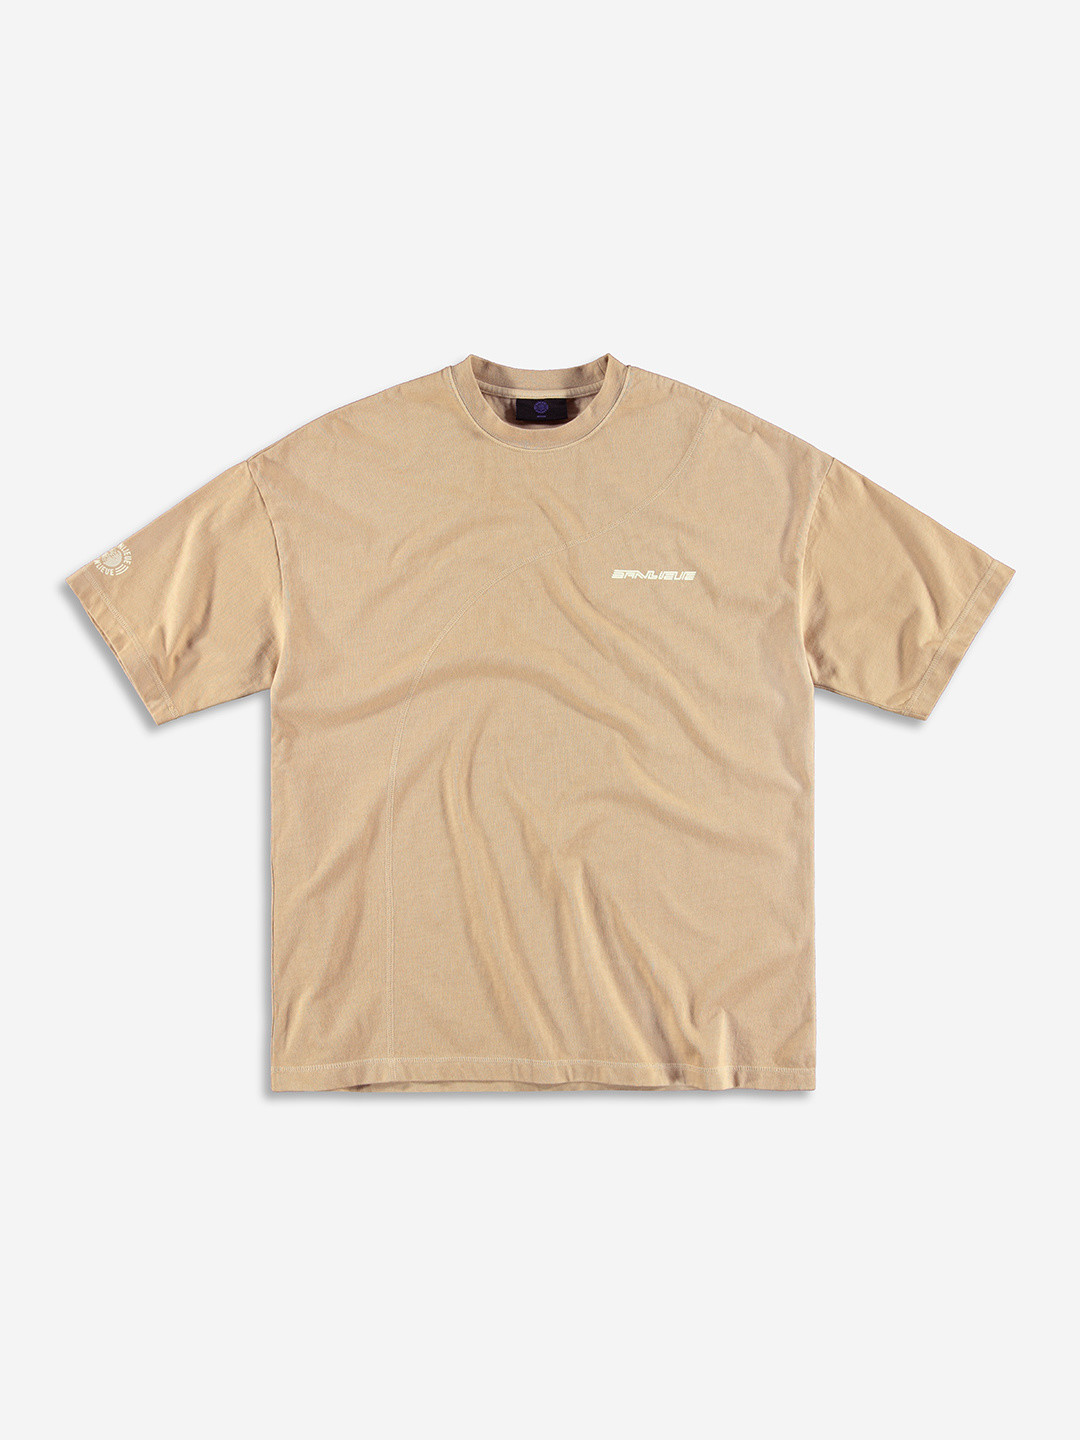 DIAGONAL STITCH OVERSIZED T-SHIRT TAUPE BROWN